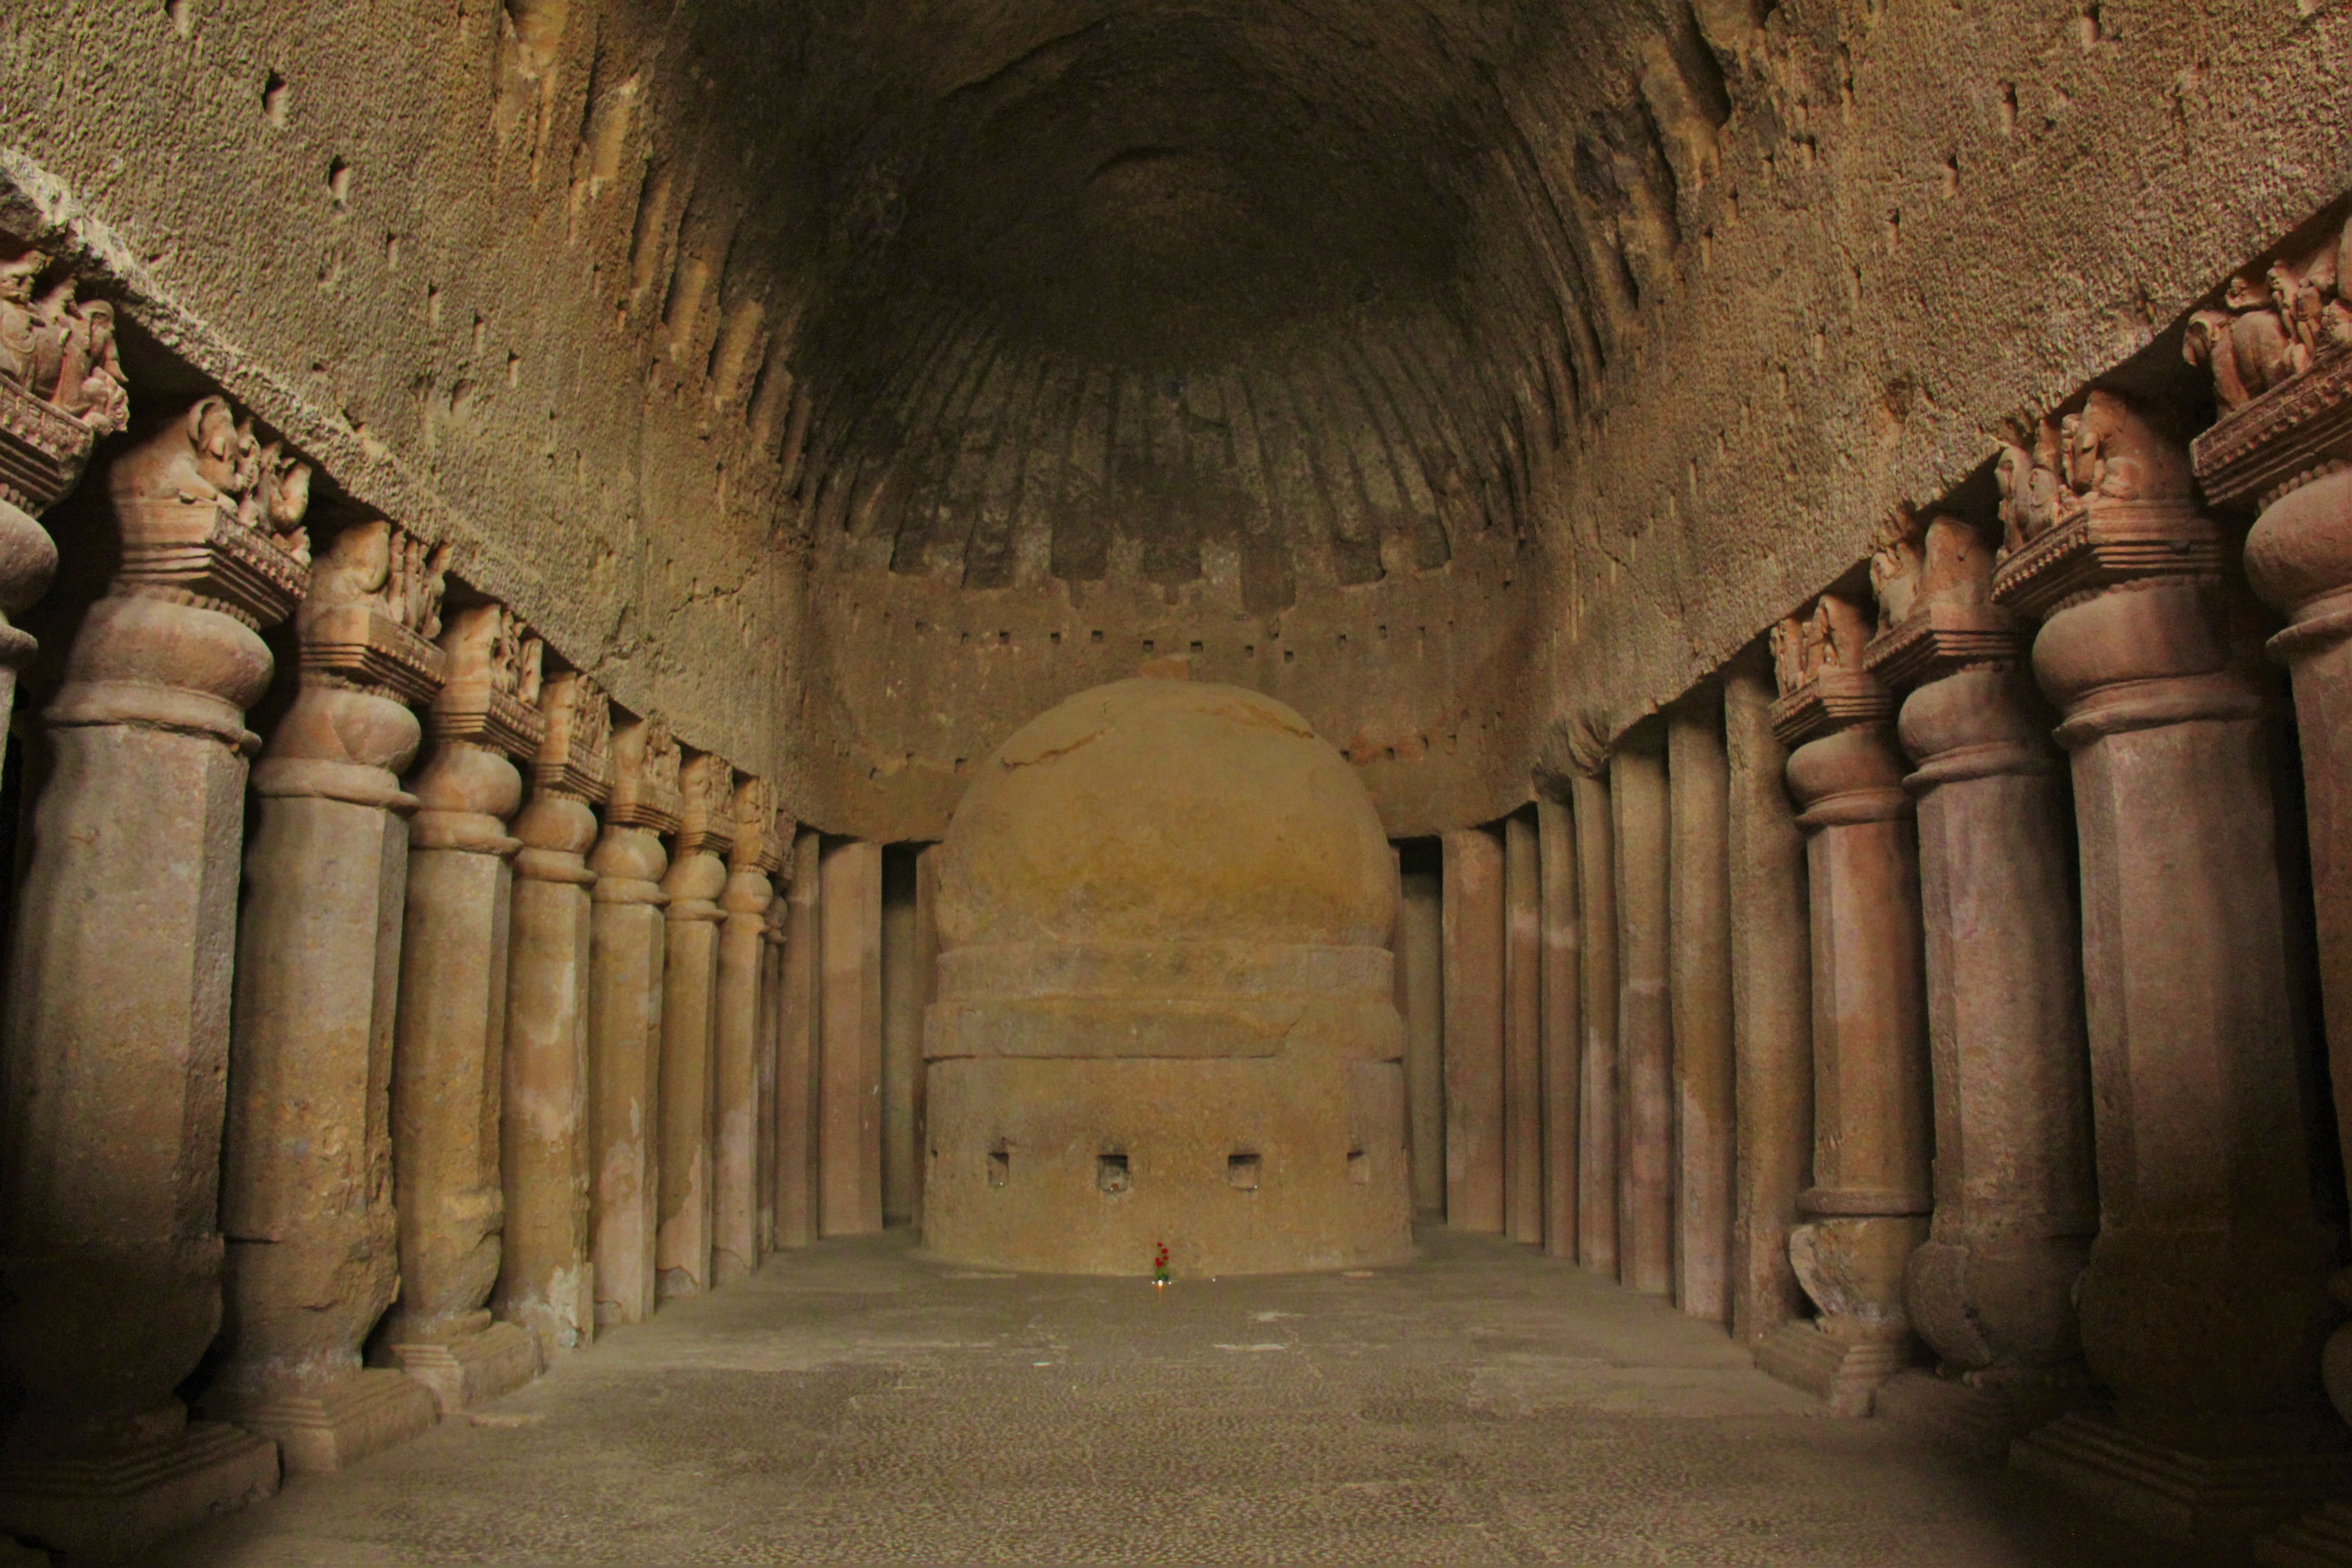 Prayer hall with Stupa in cave 03 of Kanheri Caves